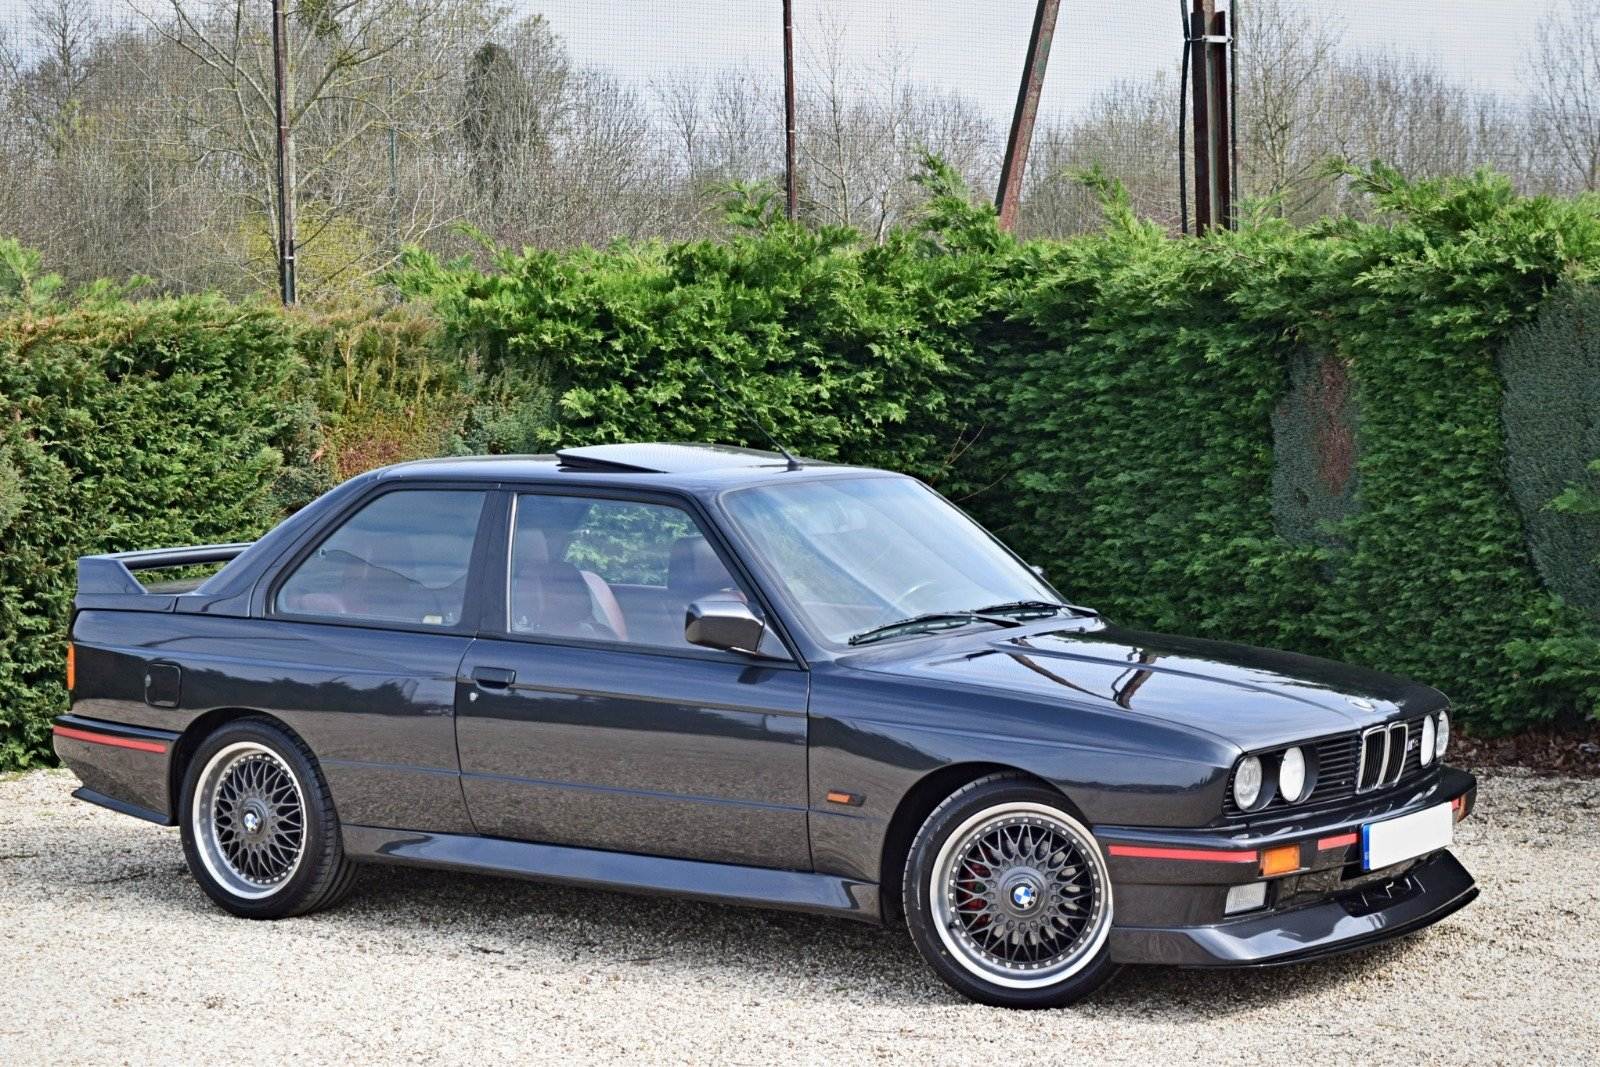 BMW M3 E30 2.3 PETROL MANUAL 1992/K BLACK For Sale (picture 1 of 6)